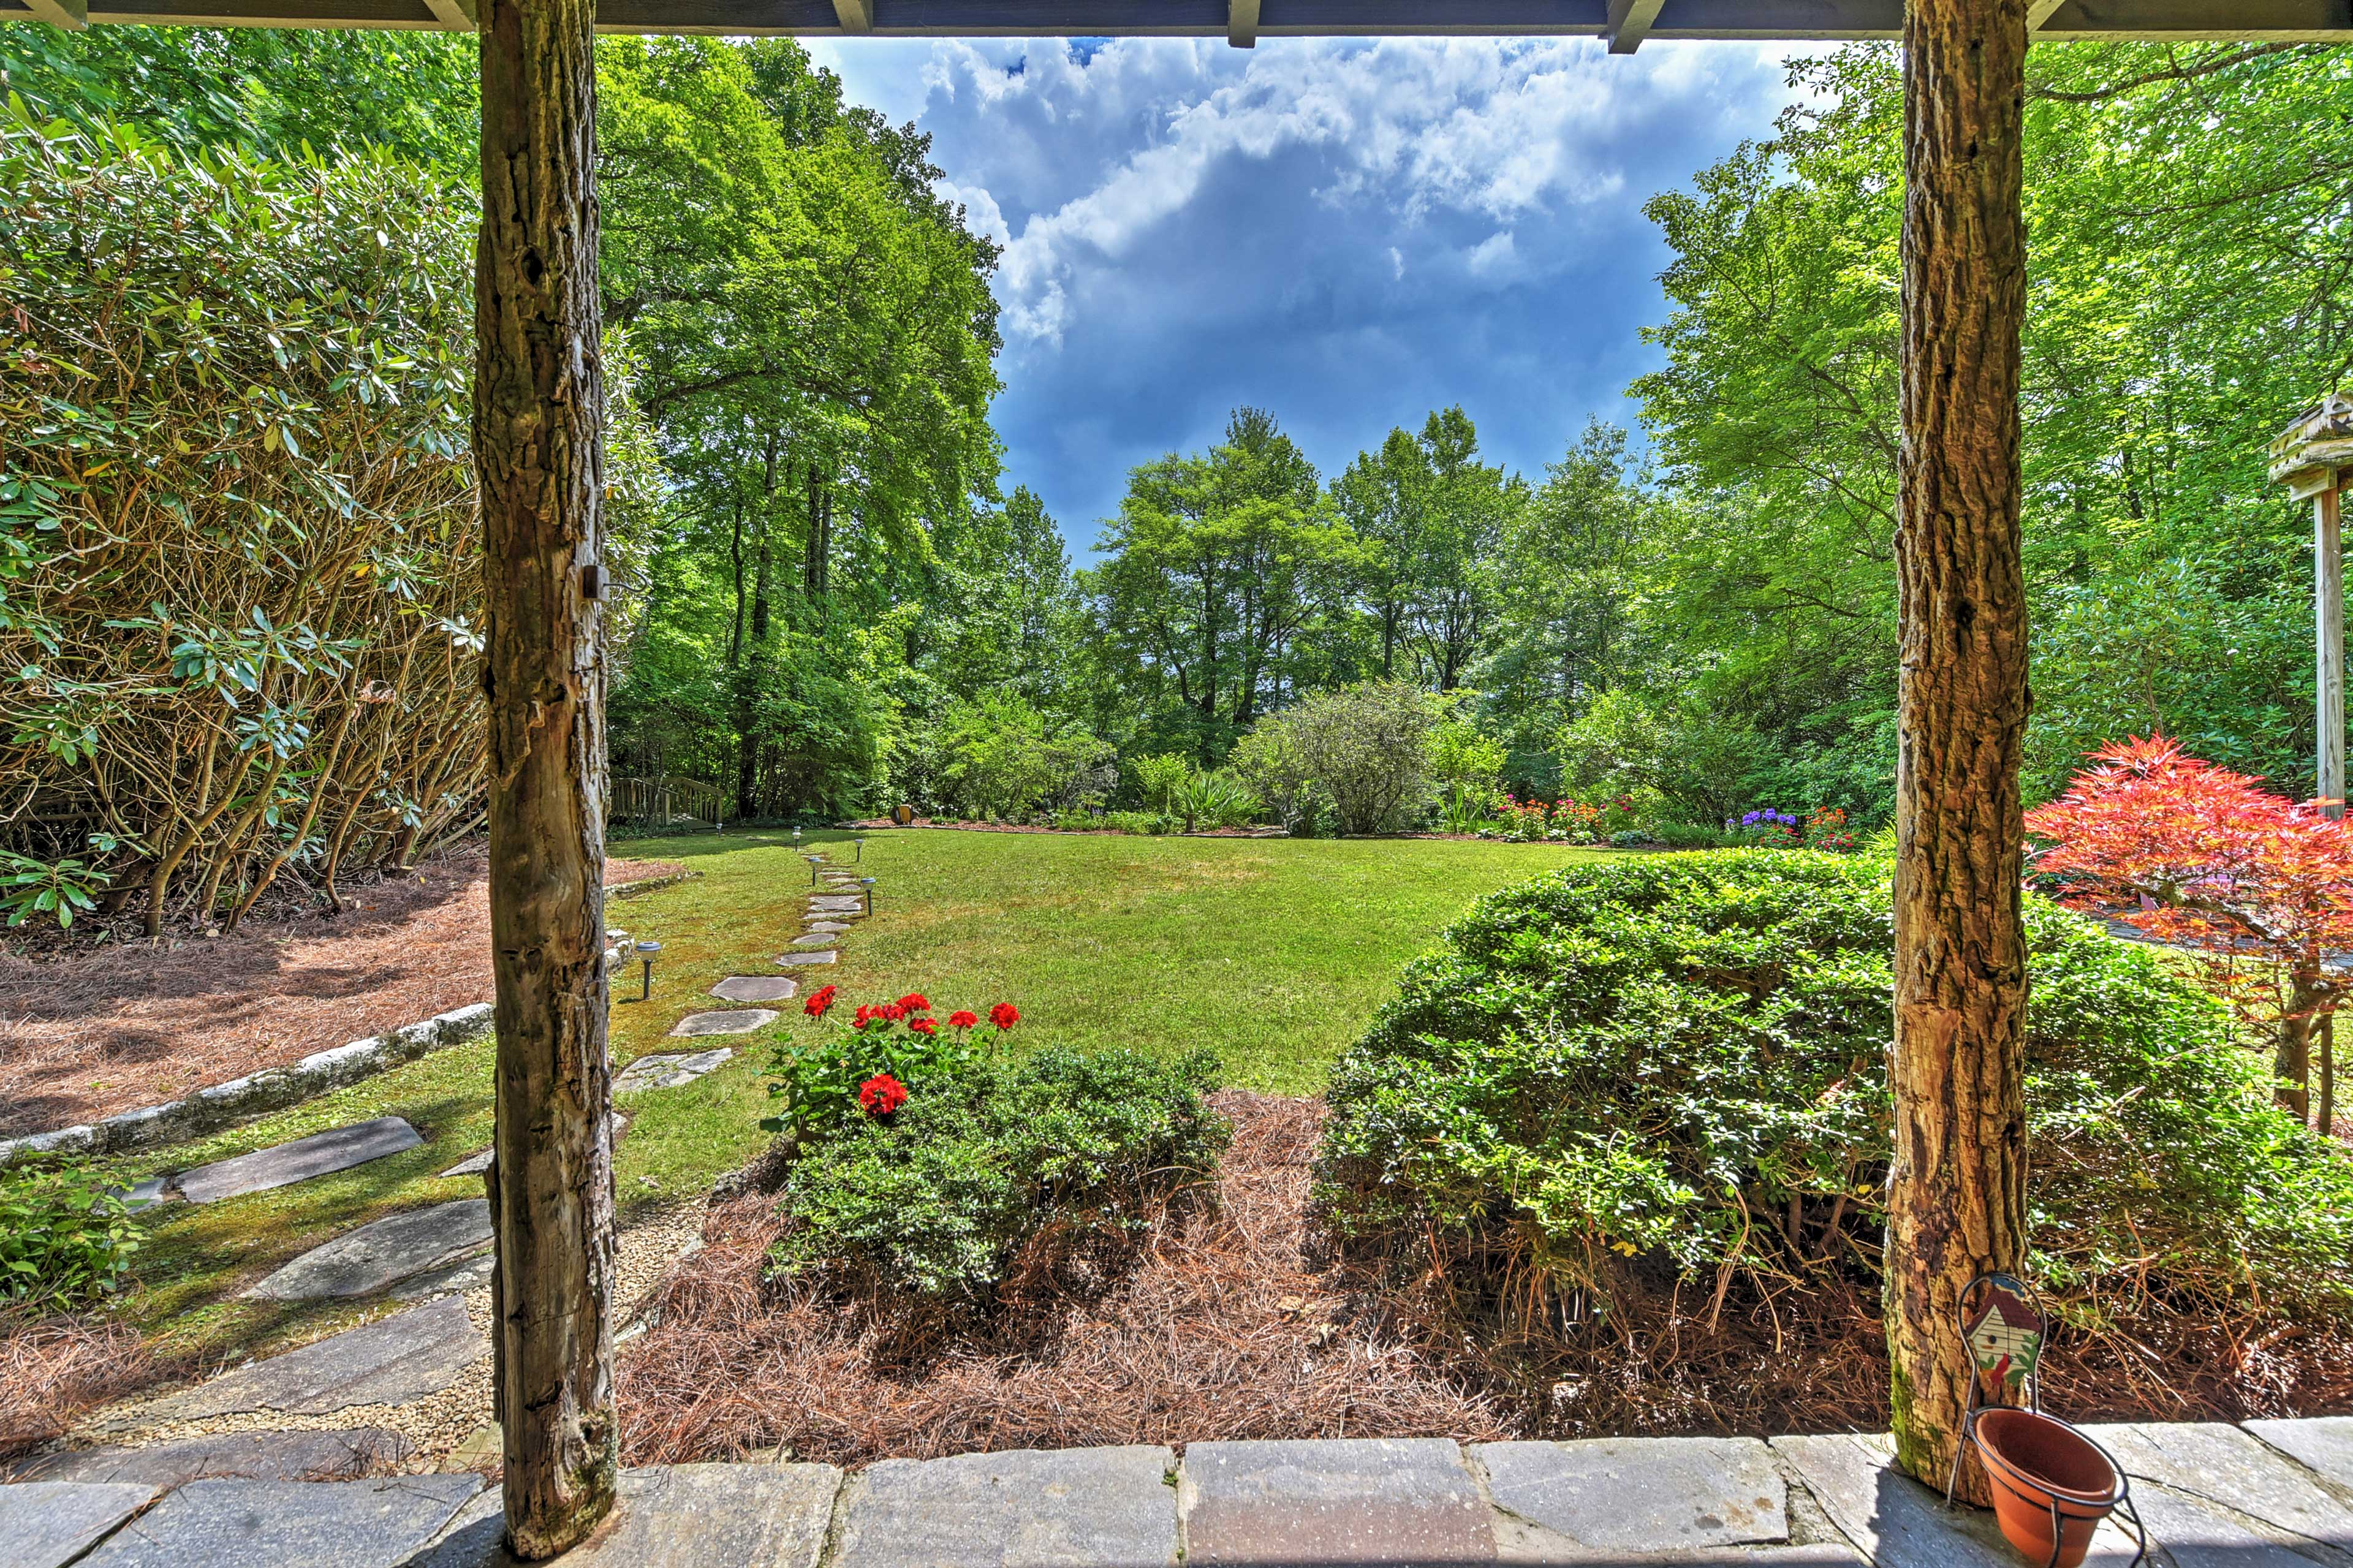 The 2-bedroom, 2-bath home for 6 is situated on 2.6 acres of private land.